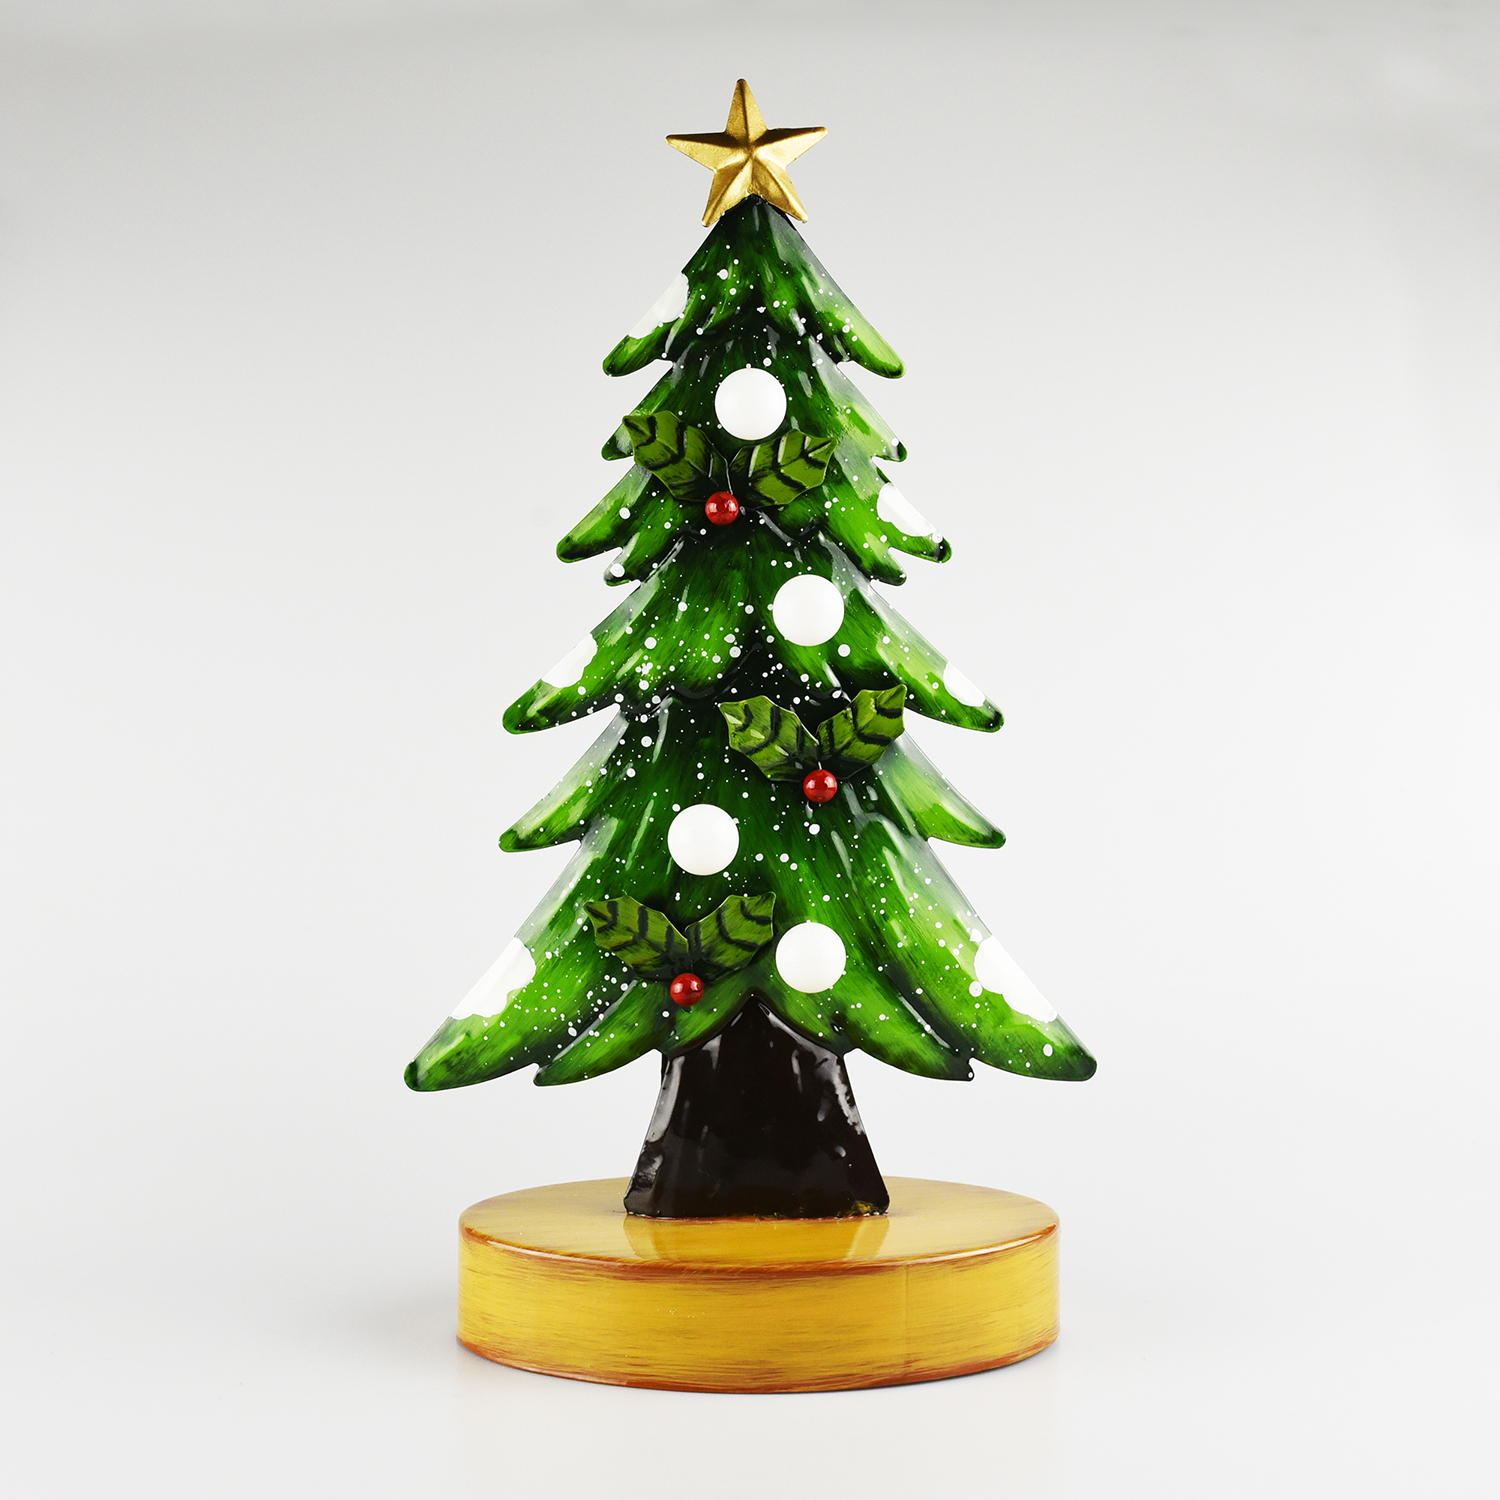 Lightup Metal Christmas Tree with Star